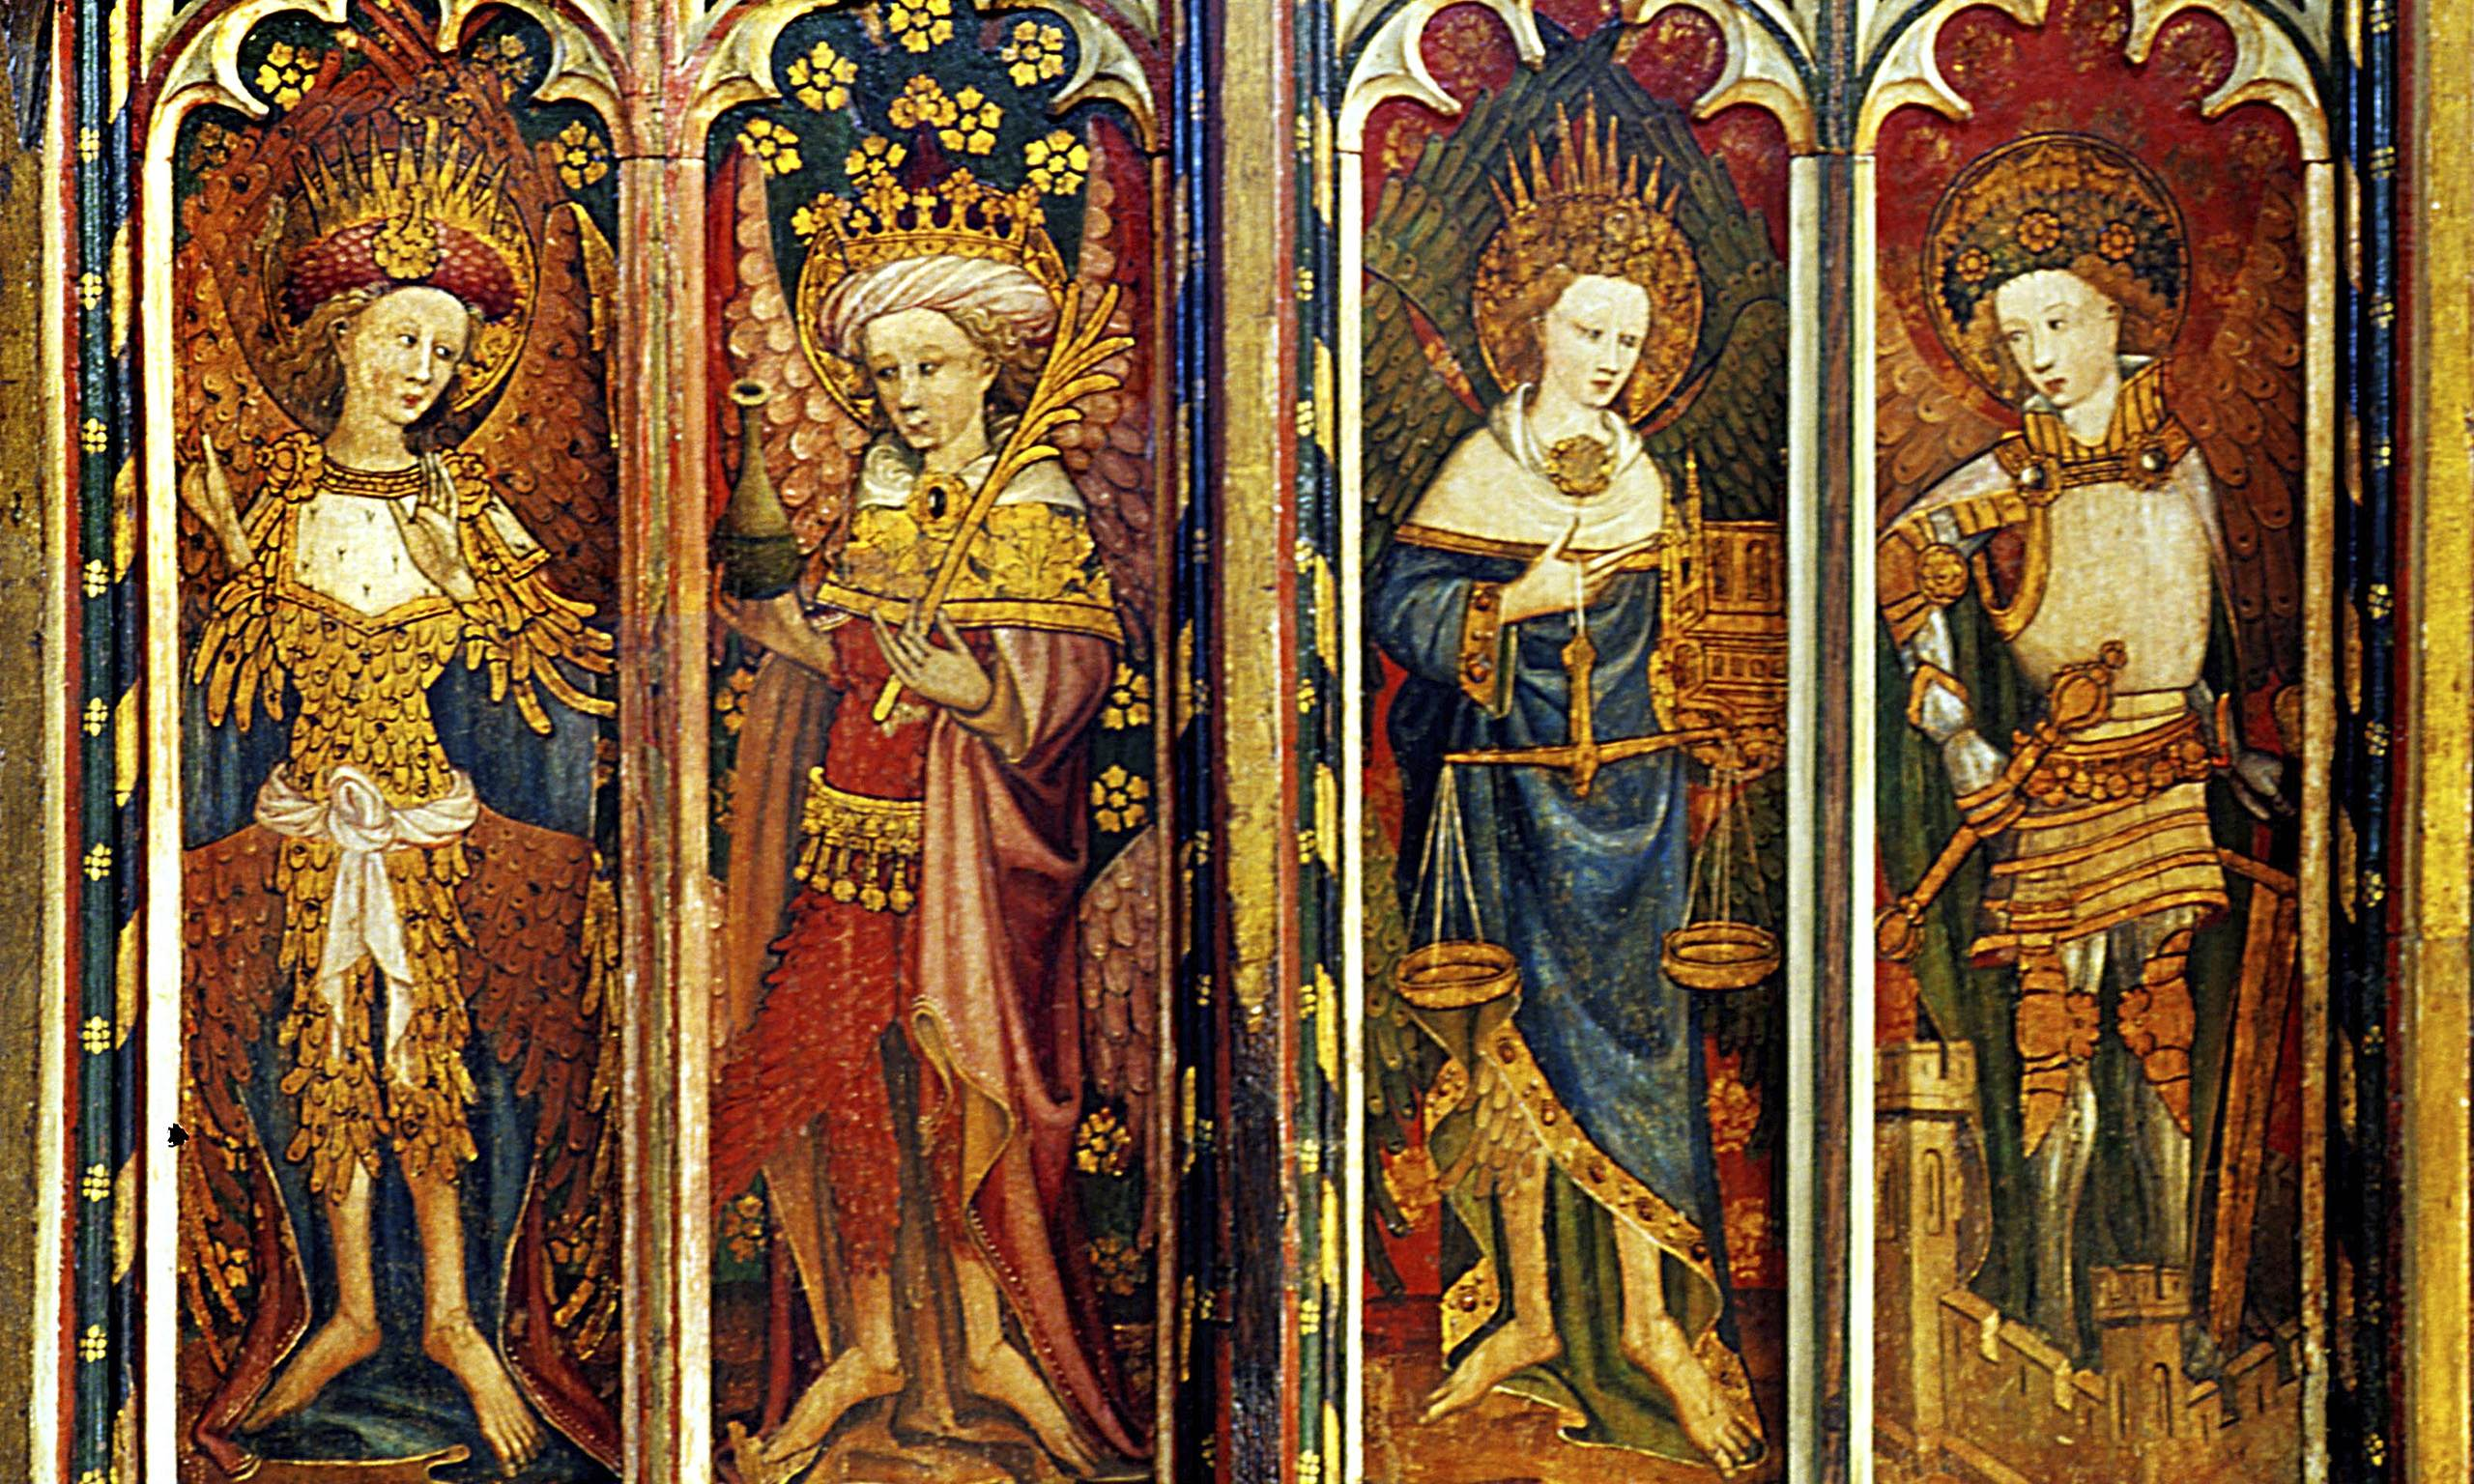 a comparison of the paintings from the medieval and renaissance period The renaissance so, you want to be a renaissance artist okay, that's a great  goal, but there are a few things you need to know about the renaissance.